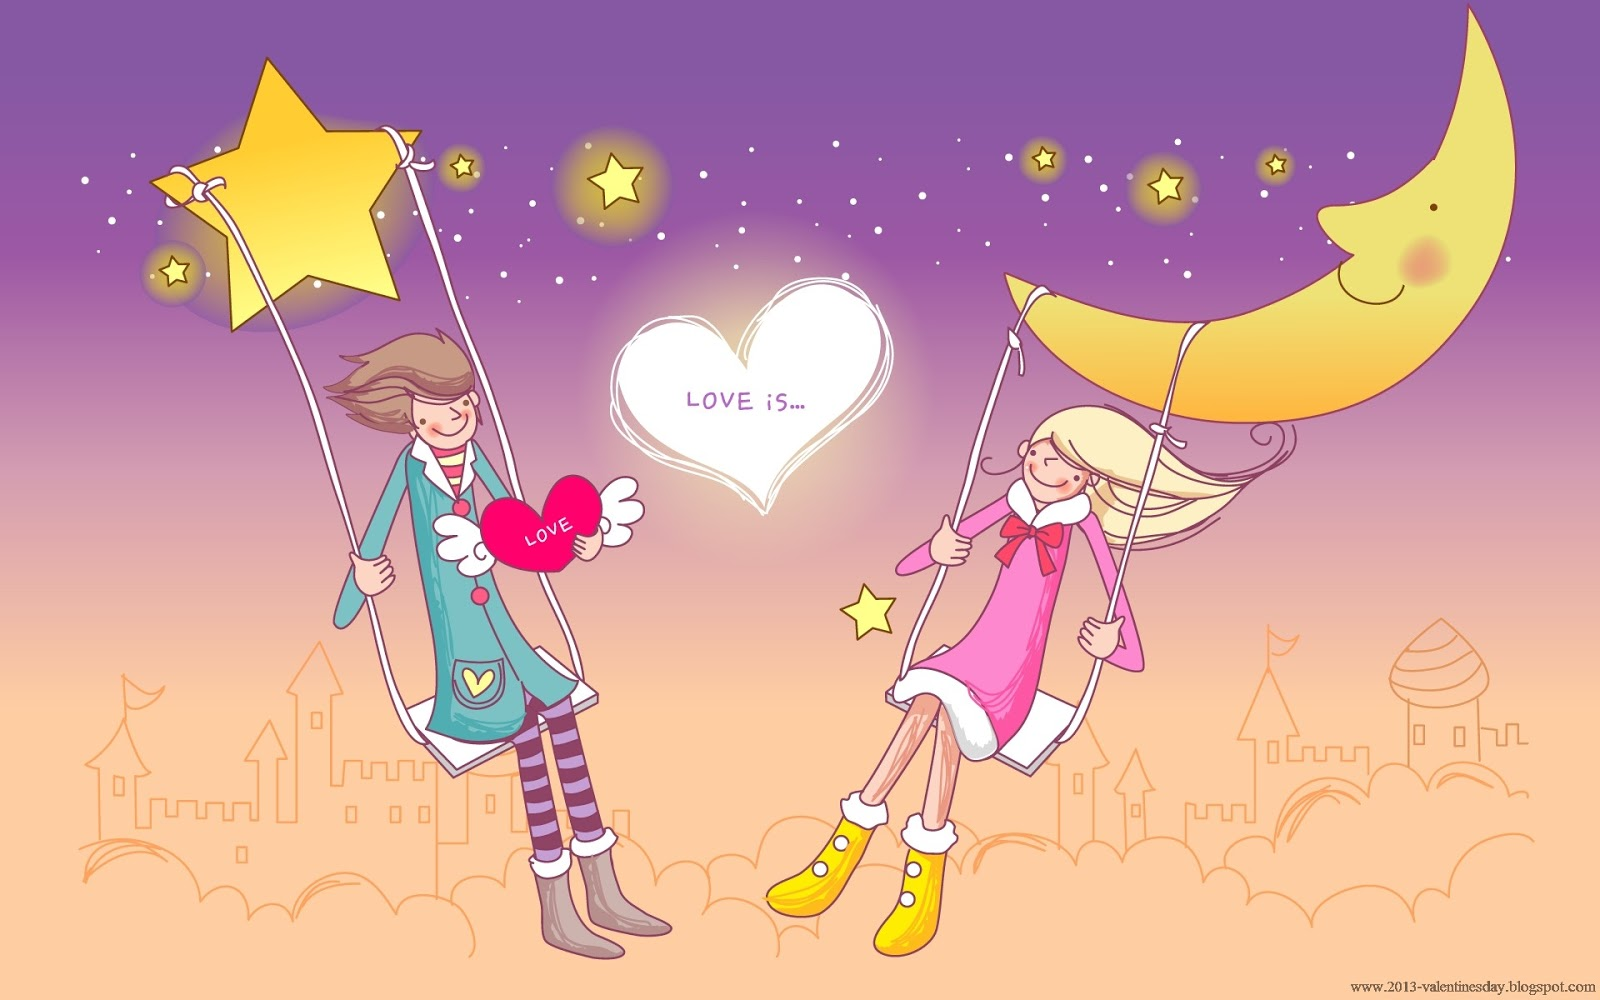 cartoon Love Full Hd Wallpaper : cute cartoon couple Love Hd wallpapers for Valentines day Online Quotes Gallery